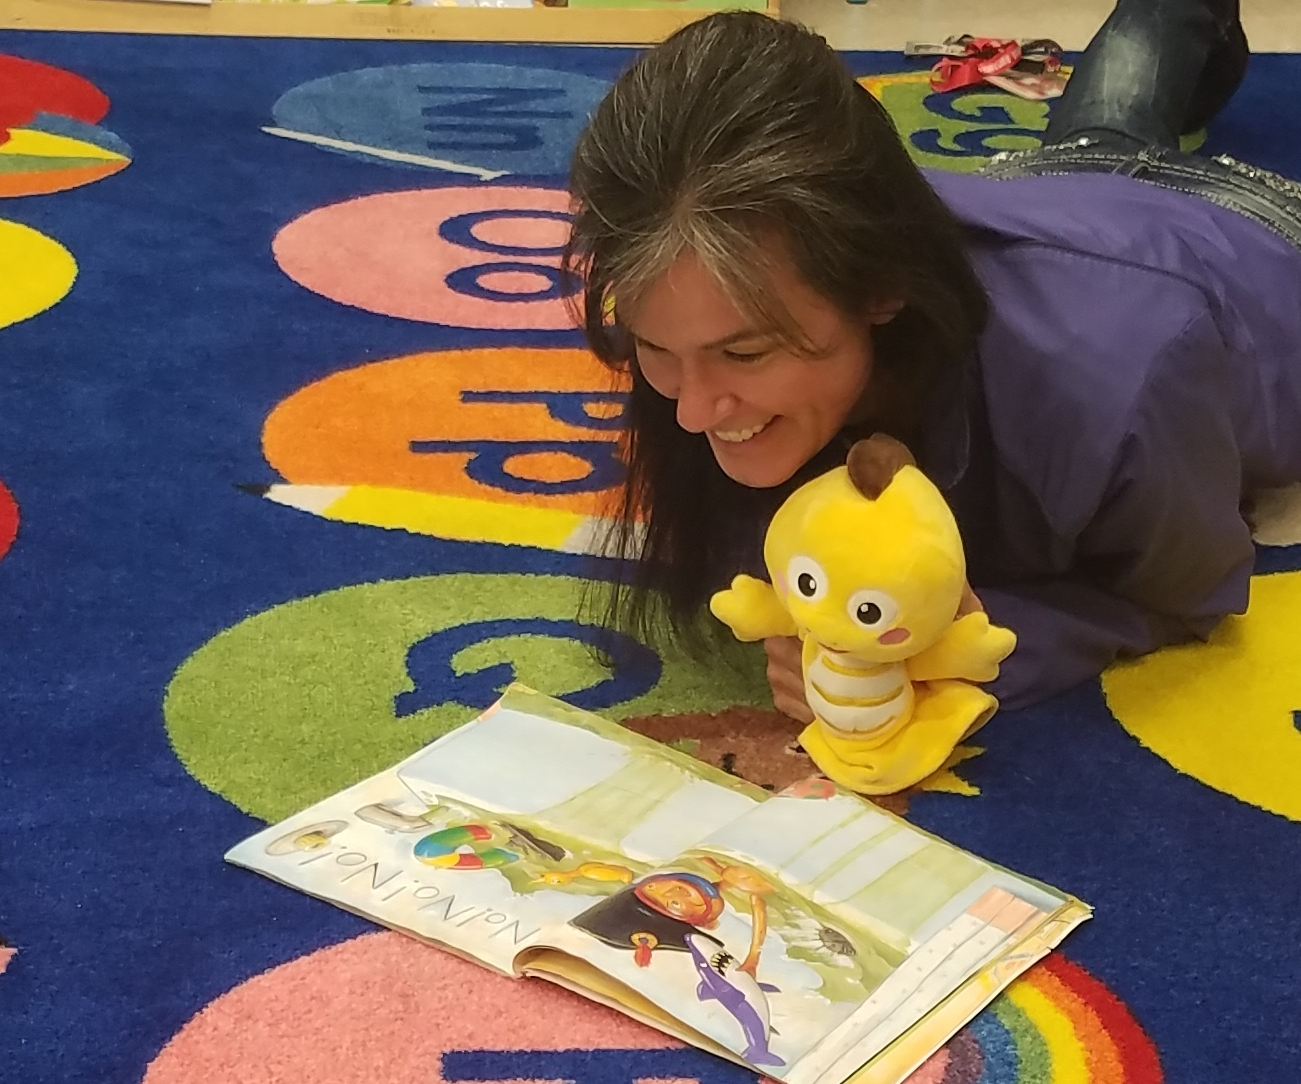 Teacher Nichole reading with Dino in her classroom